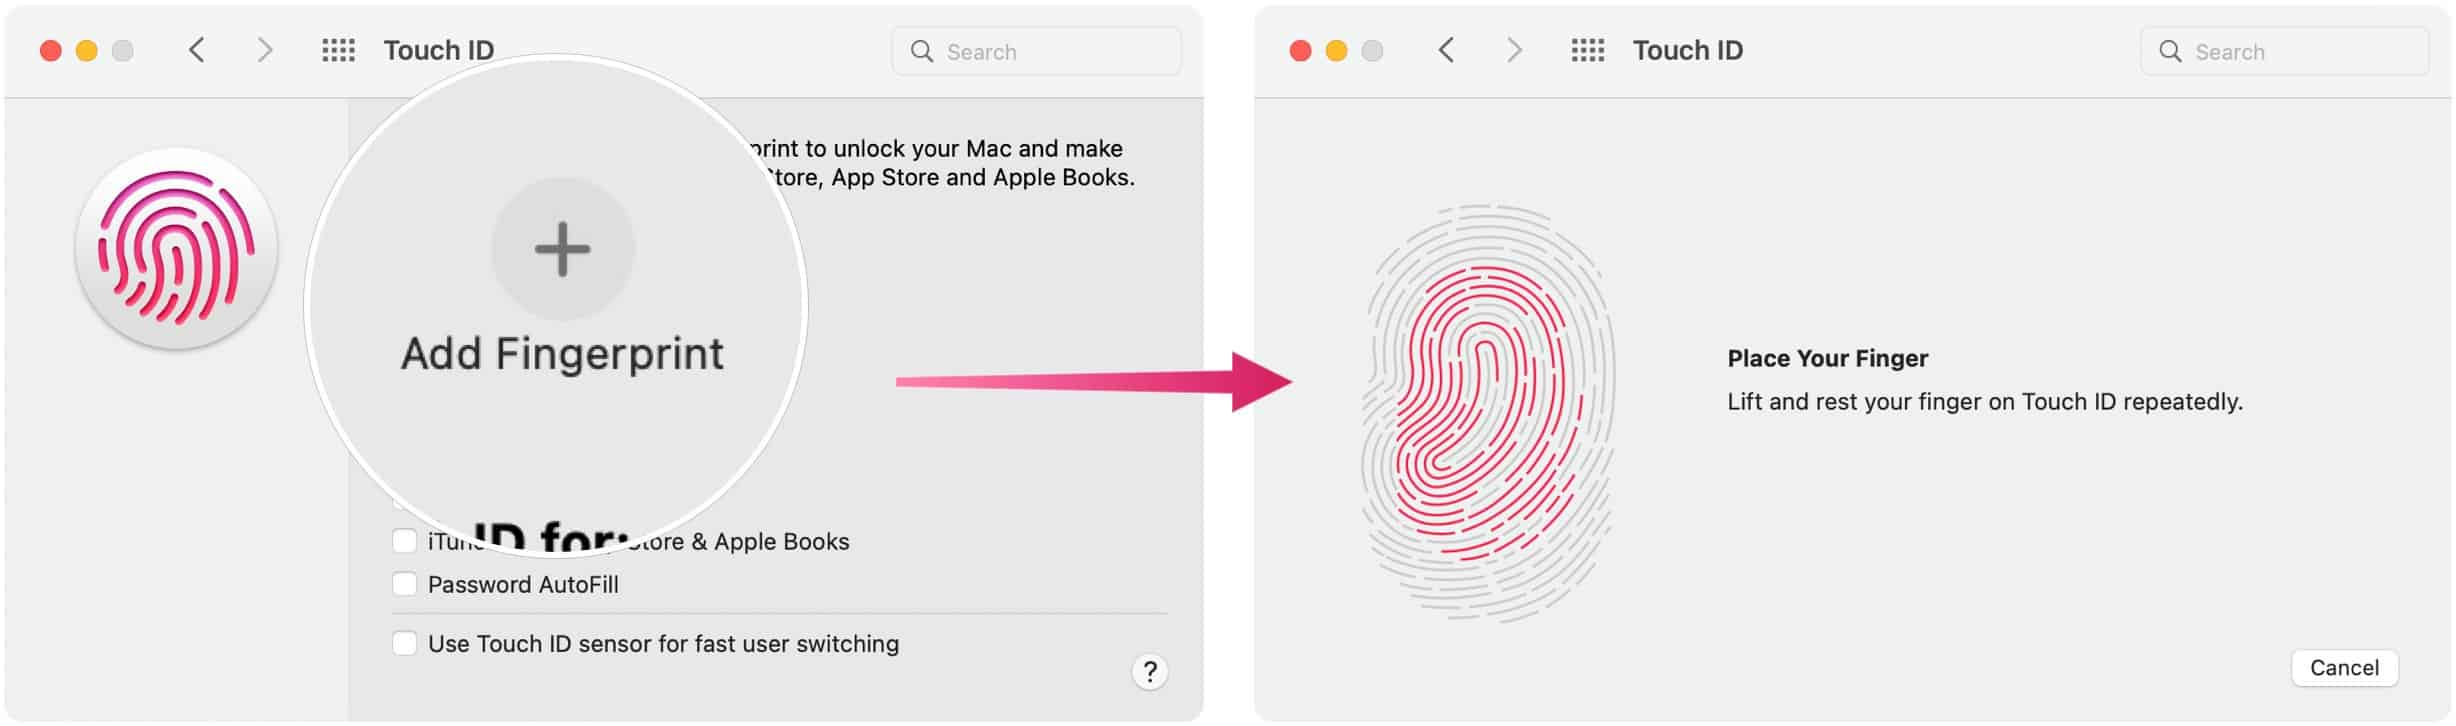 Touch ID issues: Add fingerprint